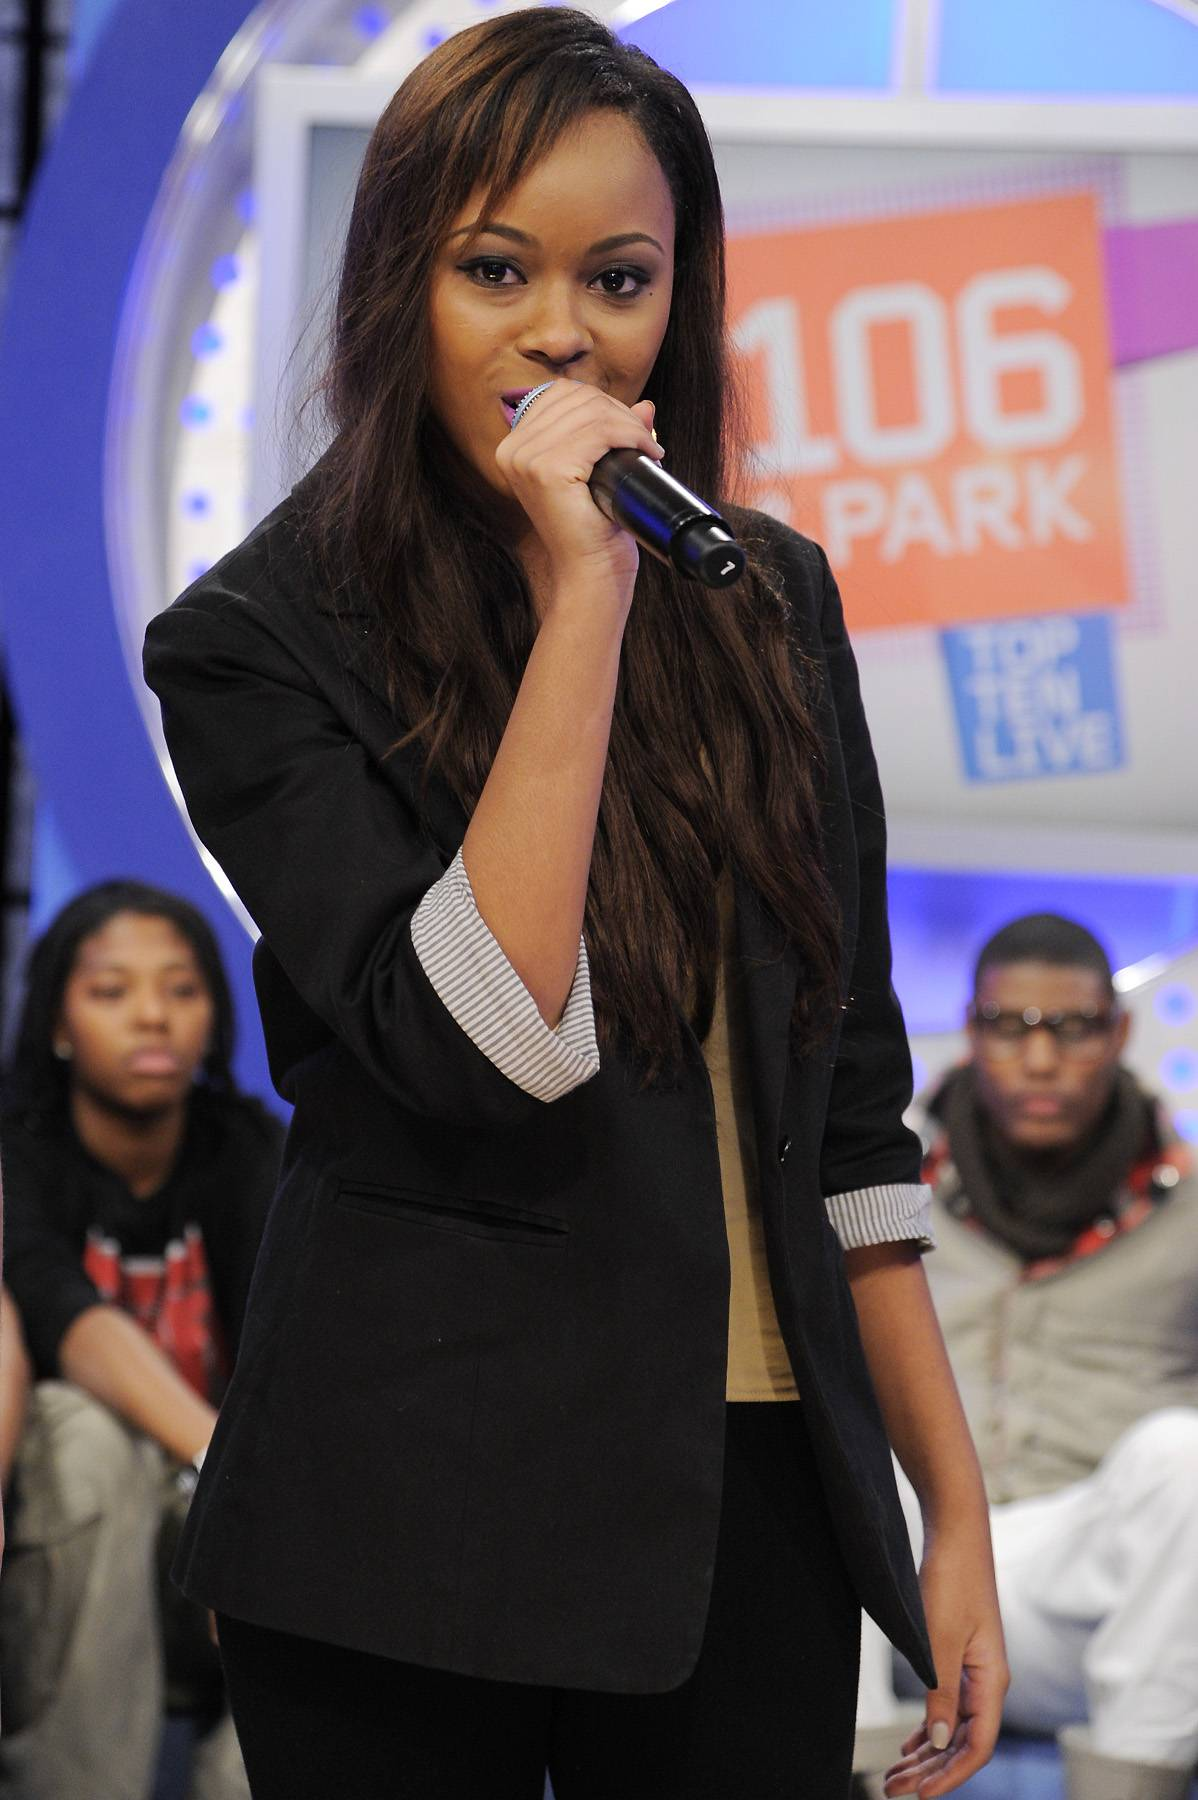 Let Me Sing - Audience member performs for the crowd during commercial break at 106 & Park, January 12, 2012. (Photo: John Ricard / BET)